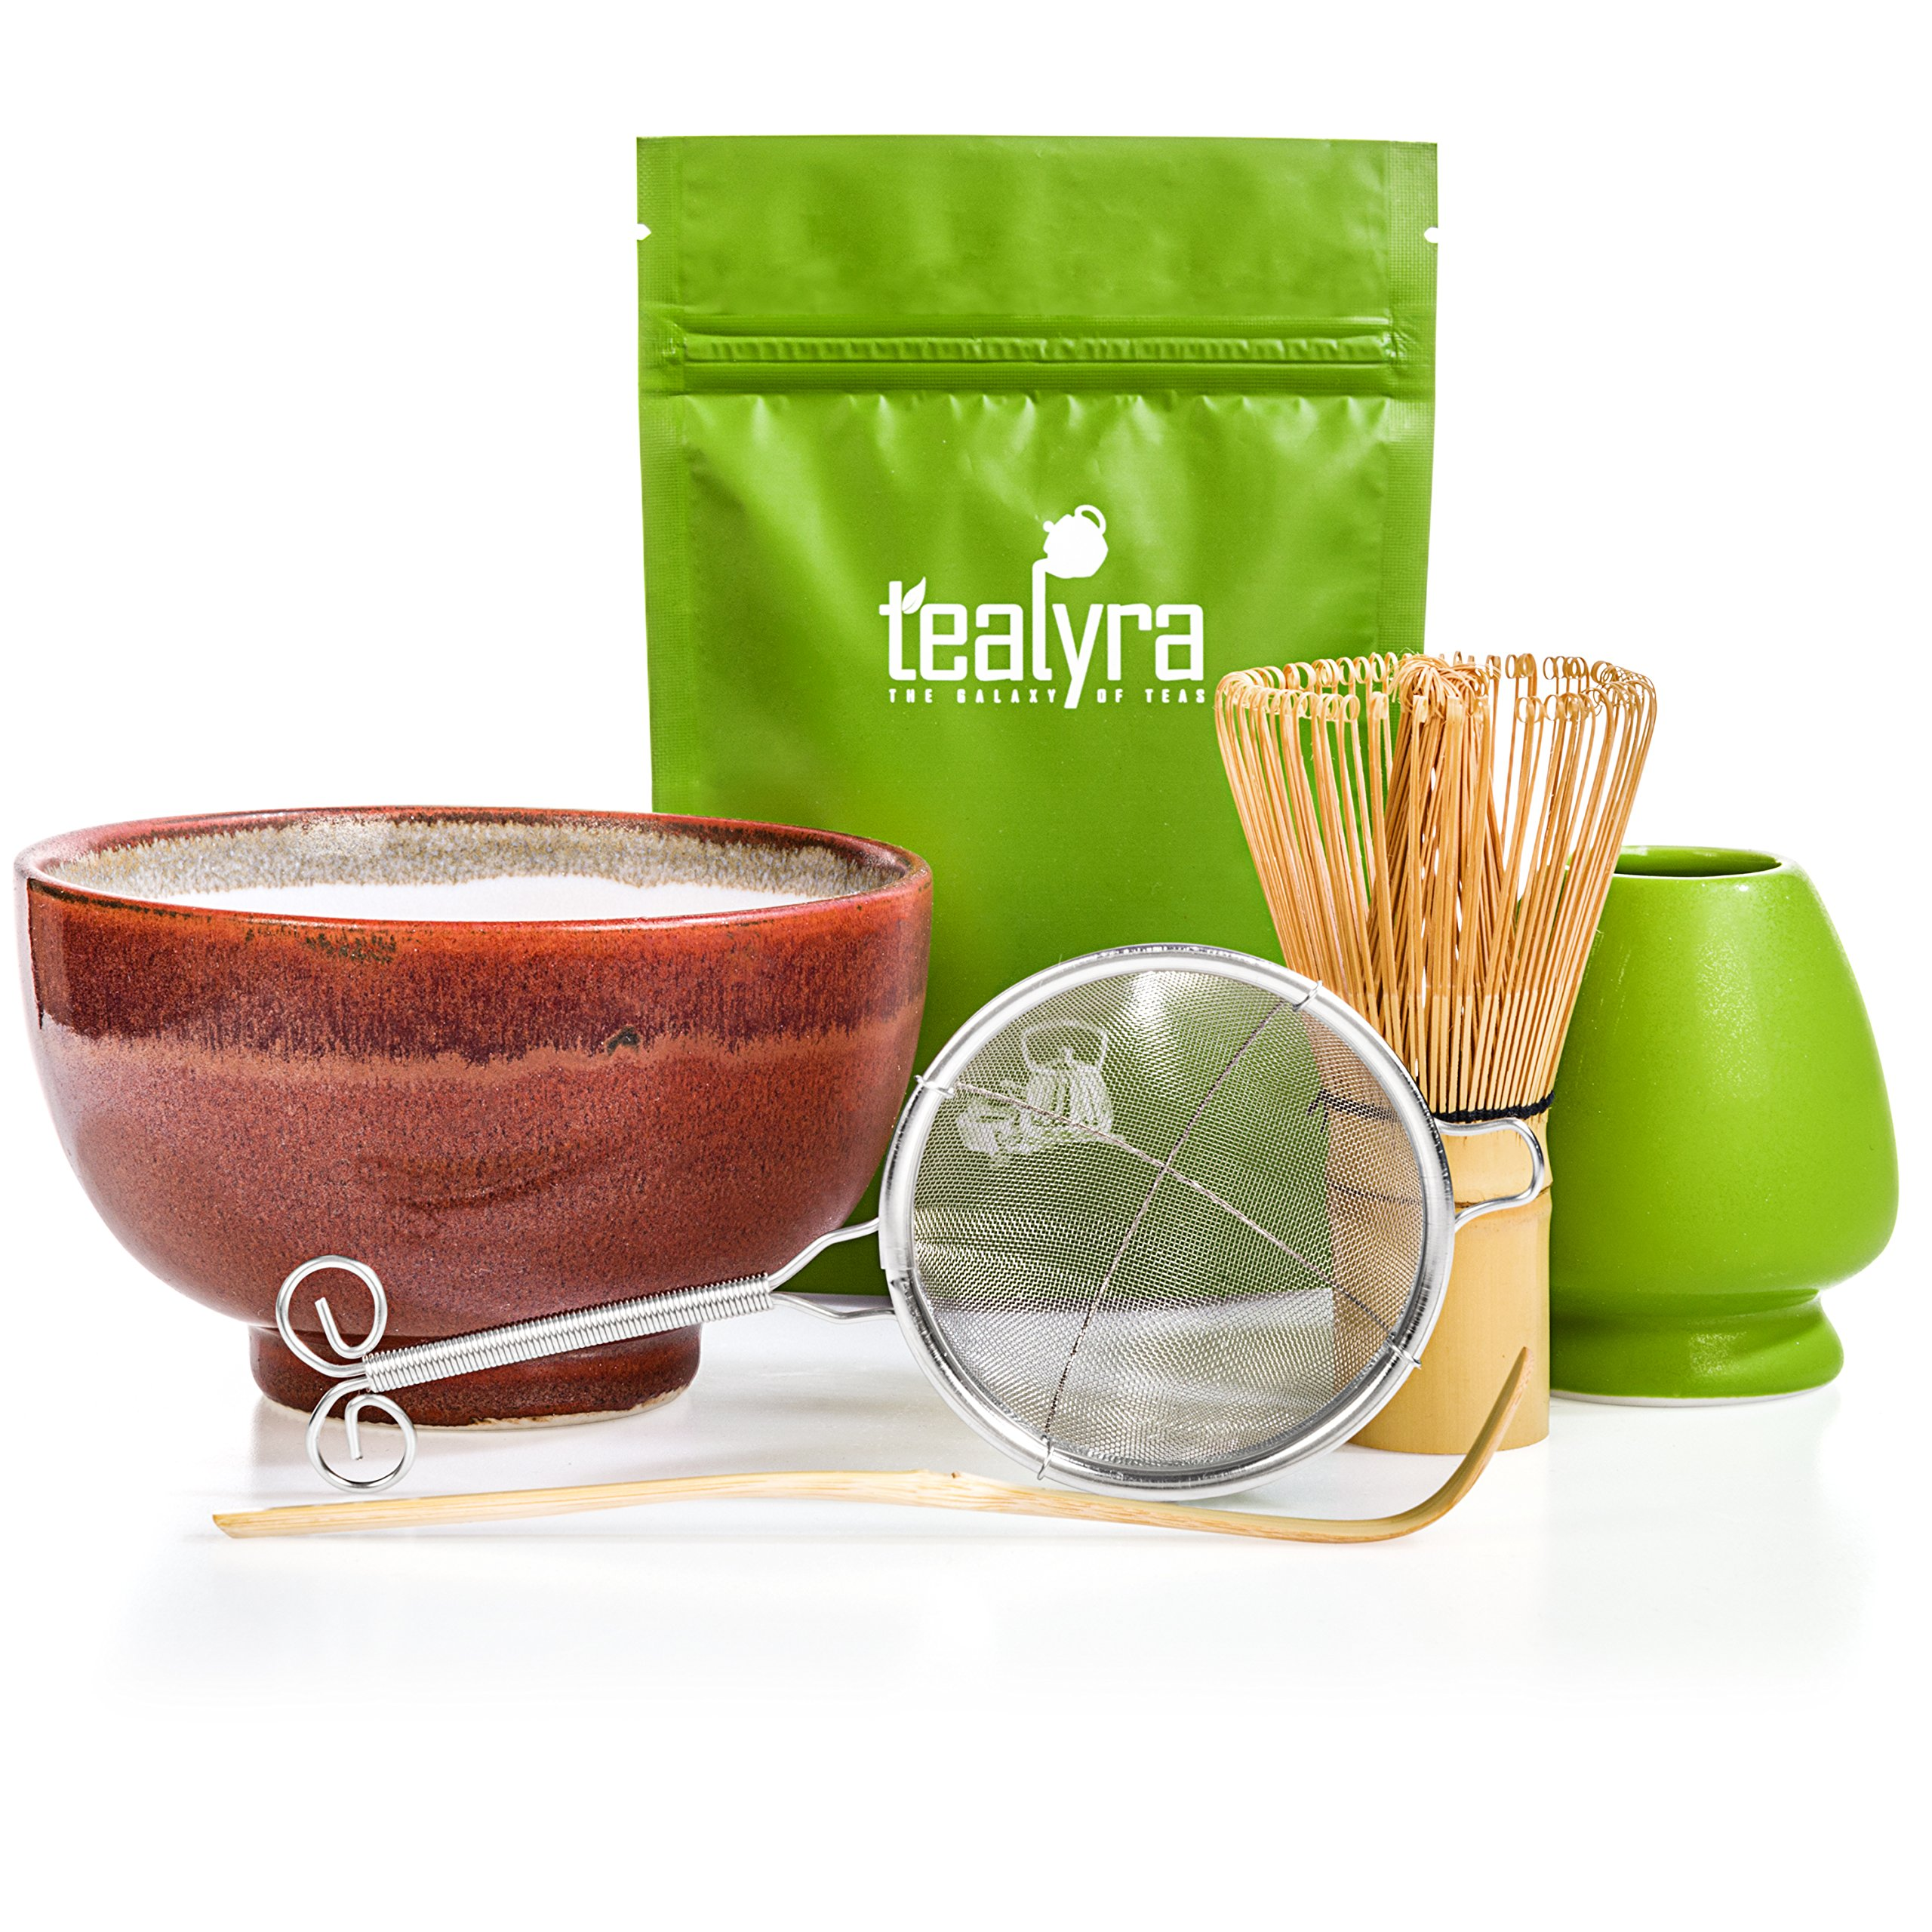 Tealyra - Matcha Tea Ceremony Start Up Kit - Complete Matcha Green Tea Gift Set - Premium Matcha Powder - Japanese Made Red Bowl - Bamboo Whisk and Scoop - Holder - Sifter - Gift Box